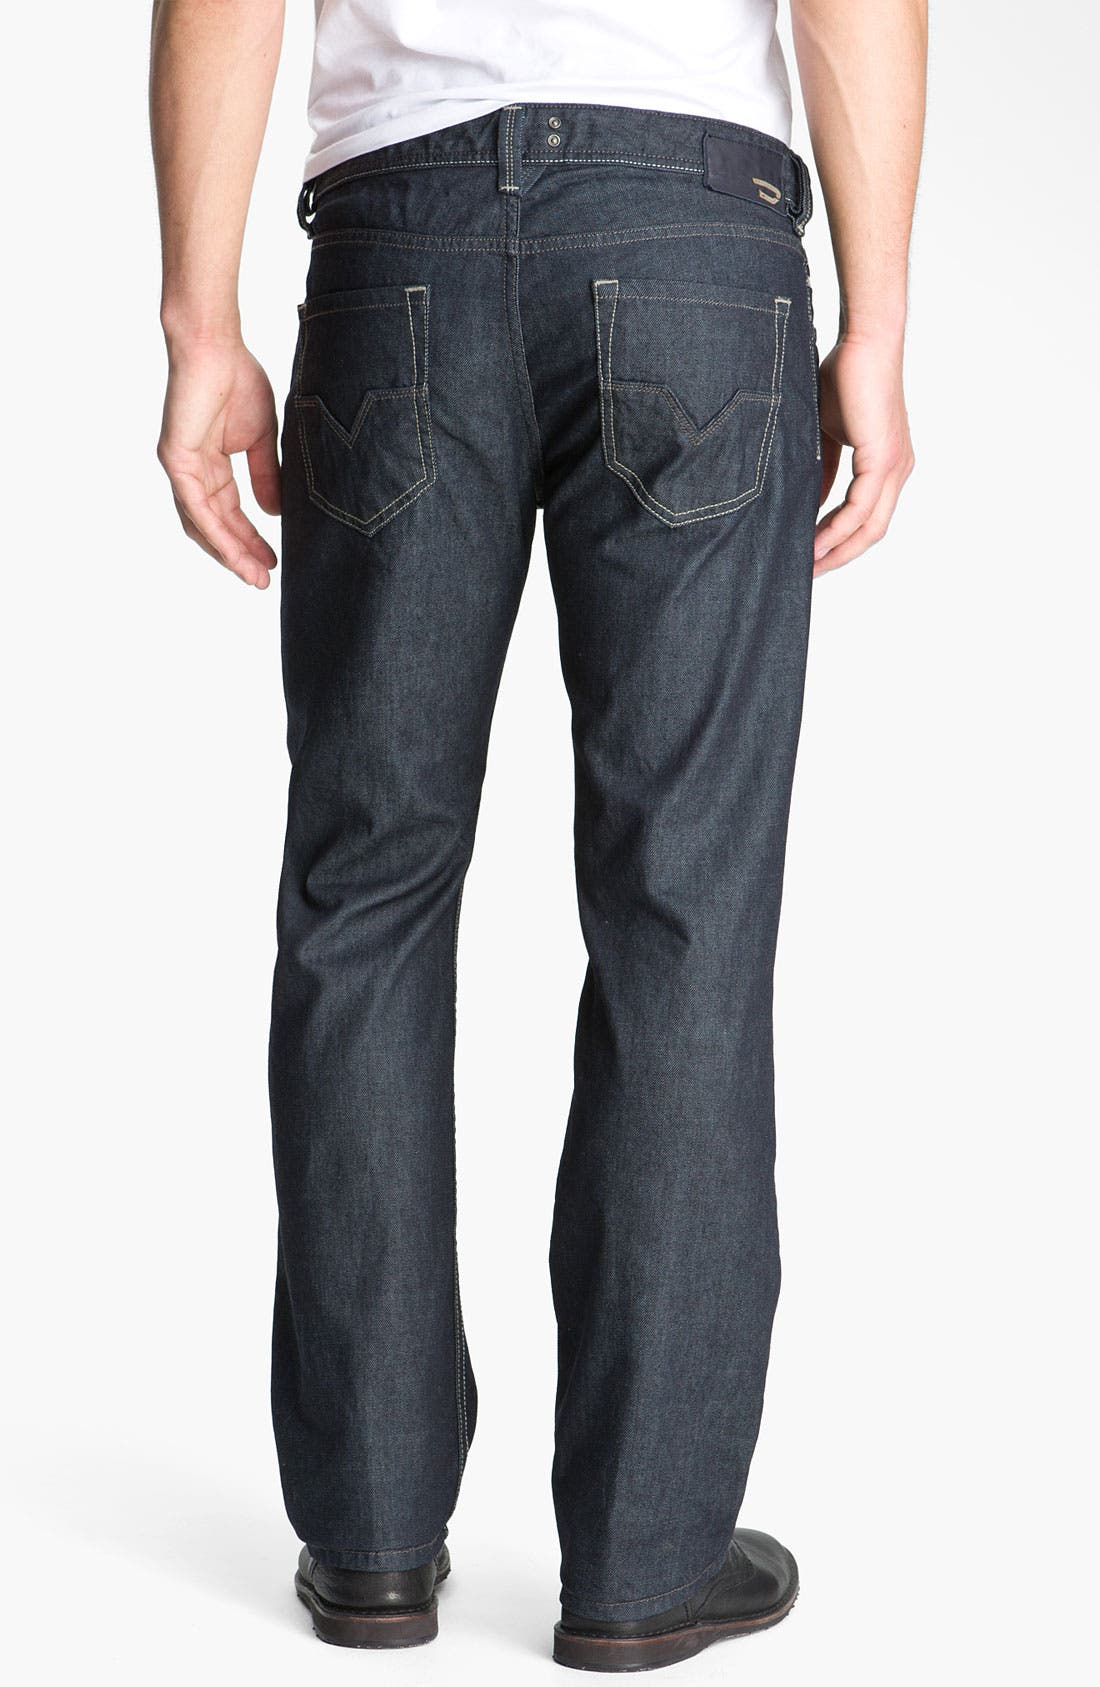 'Larkee' Straight Leg Jeans,                             Main thumbnail 1, color,                             400